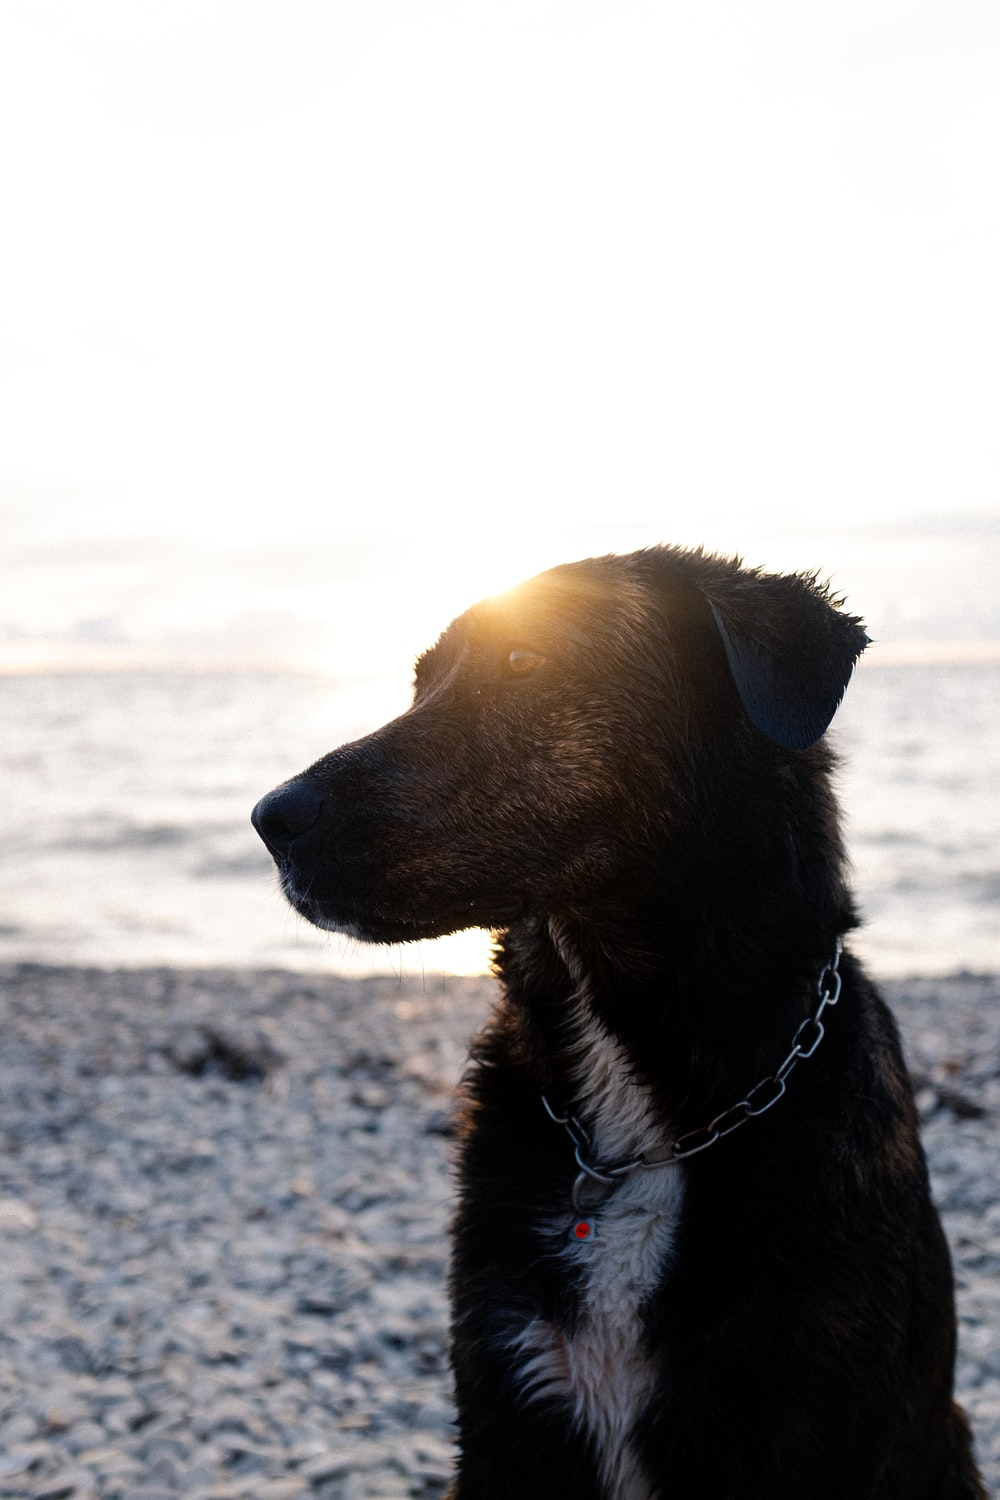 brown short coated dog on gray sand during daytime